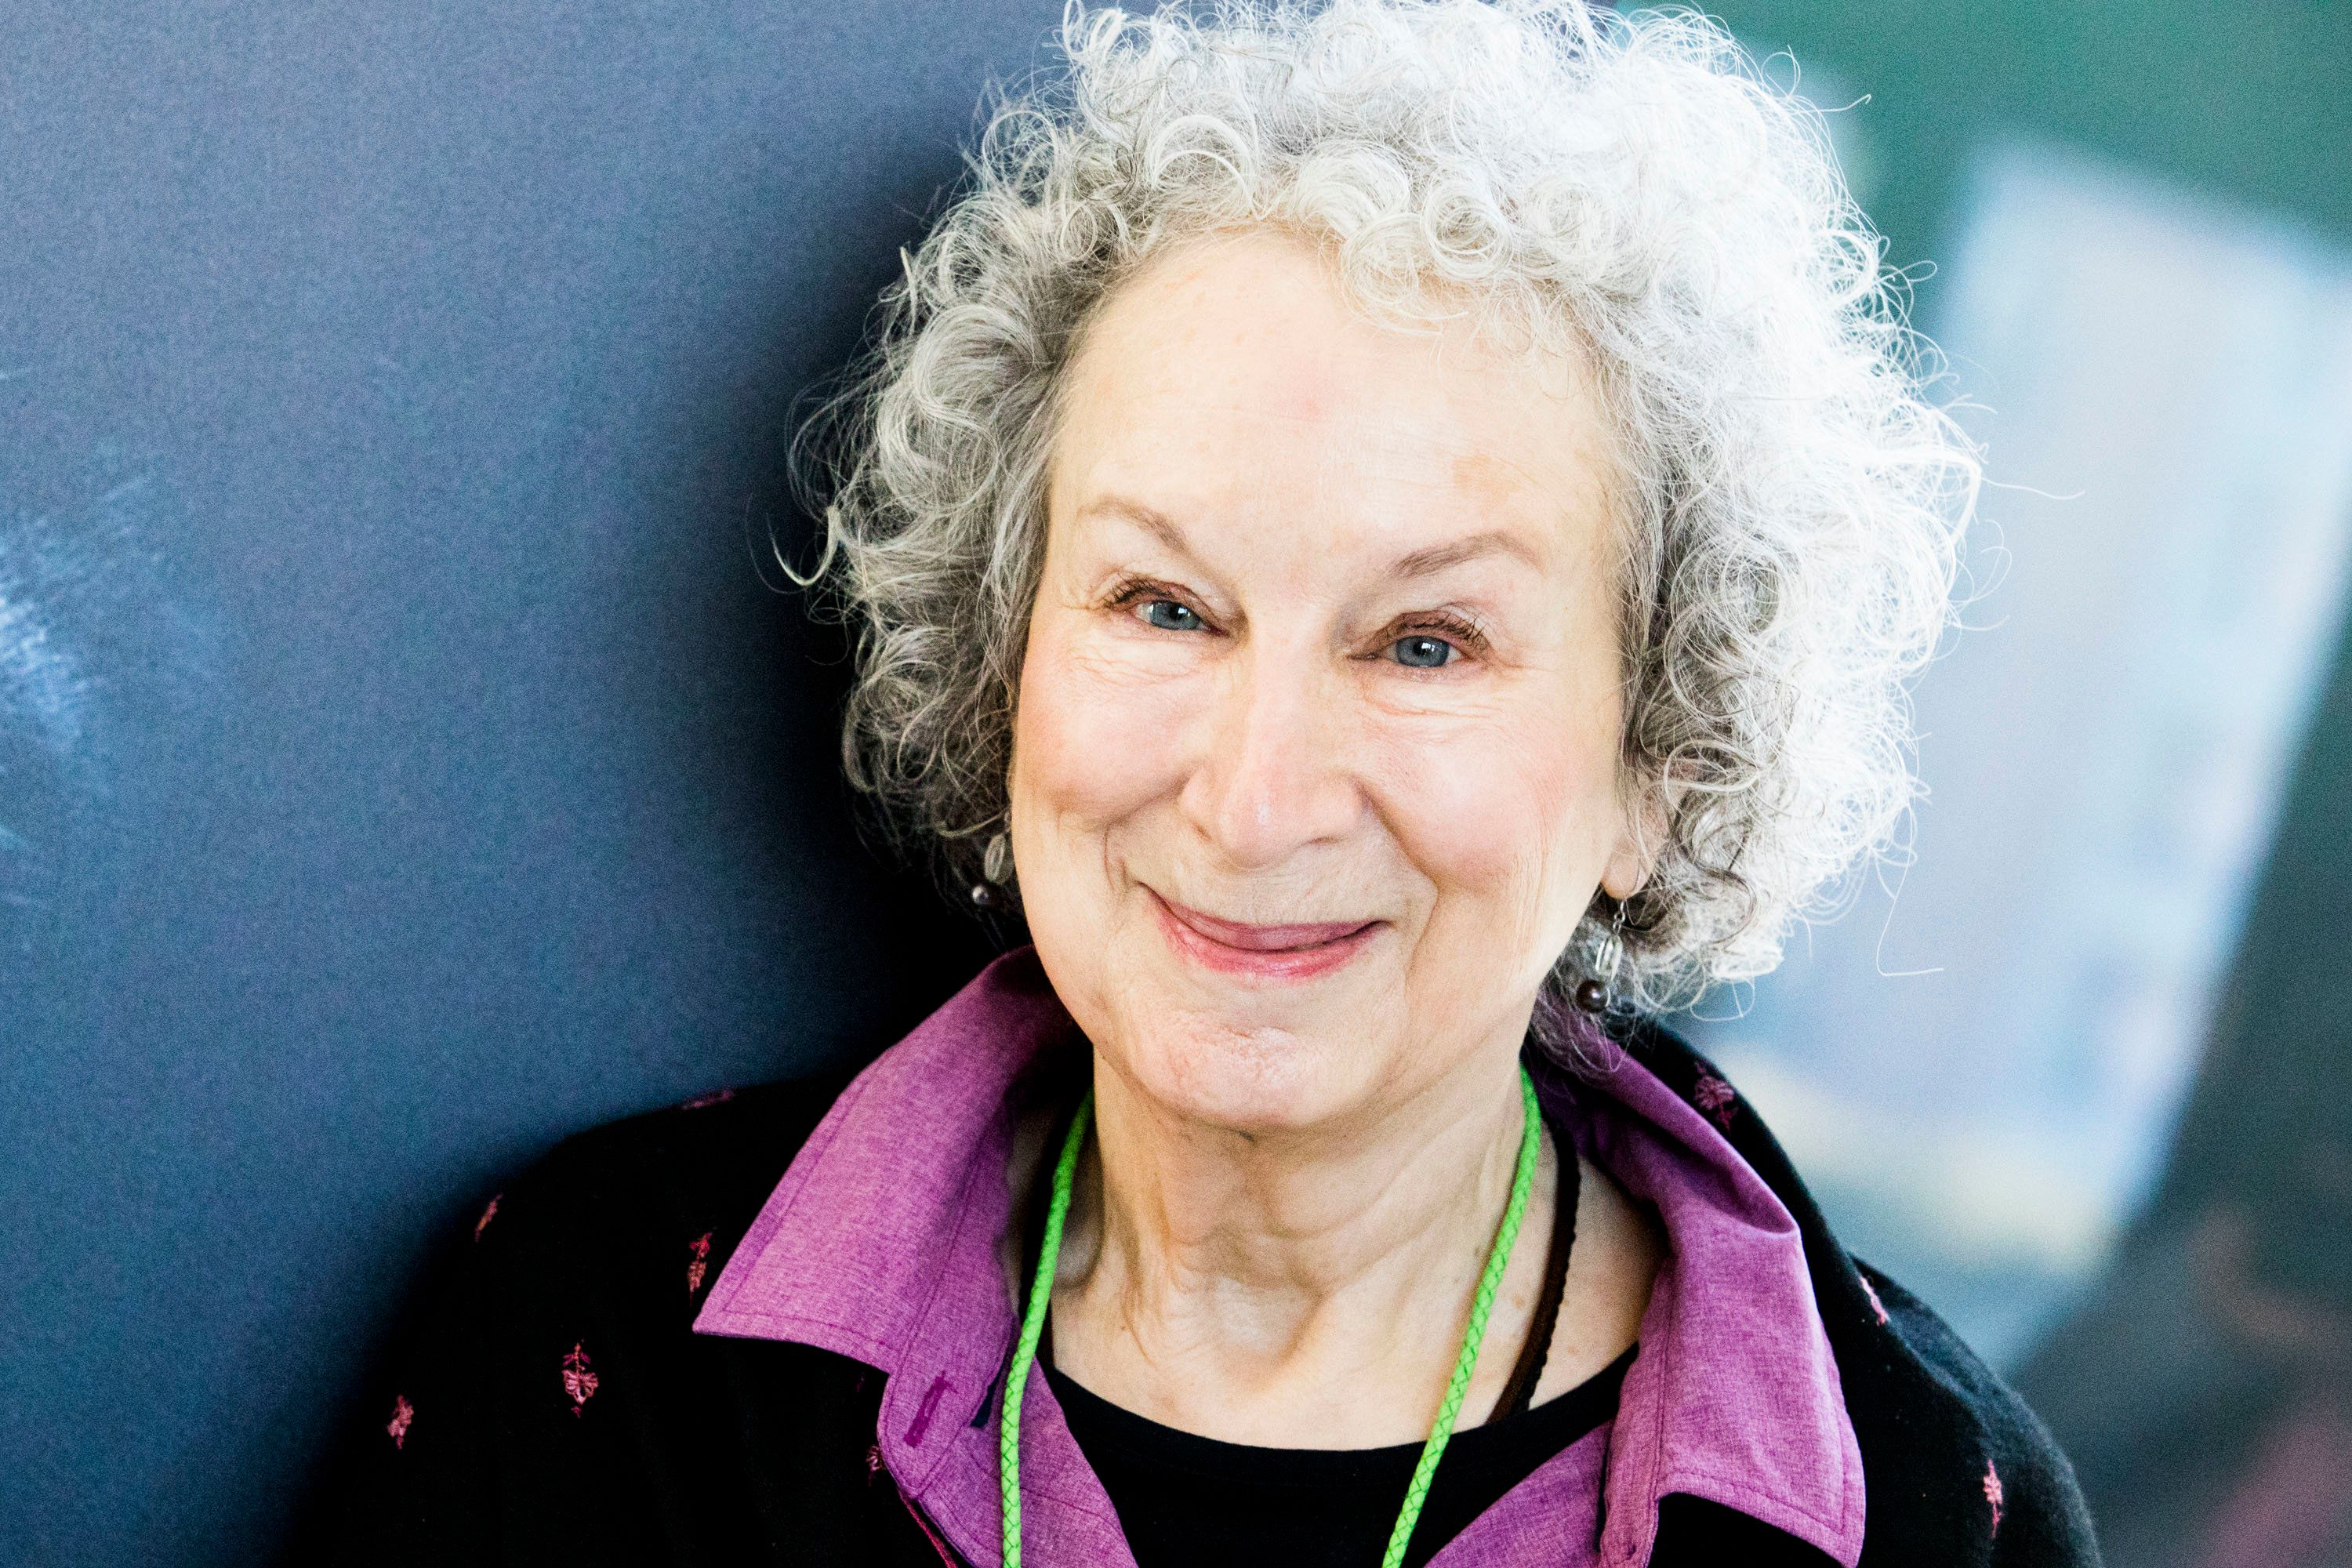 Margaret Atwood announces sequel to The Handmaid's Tale